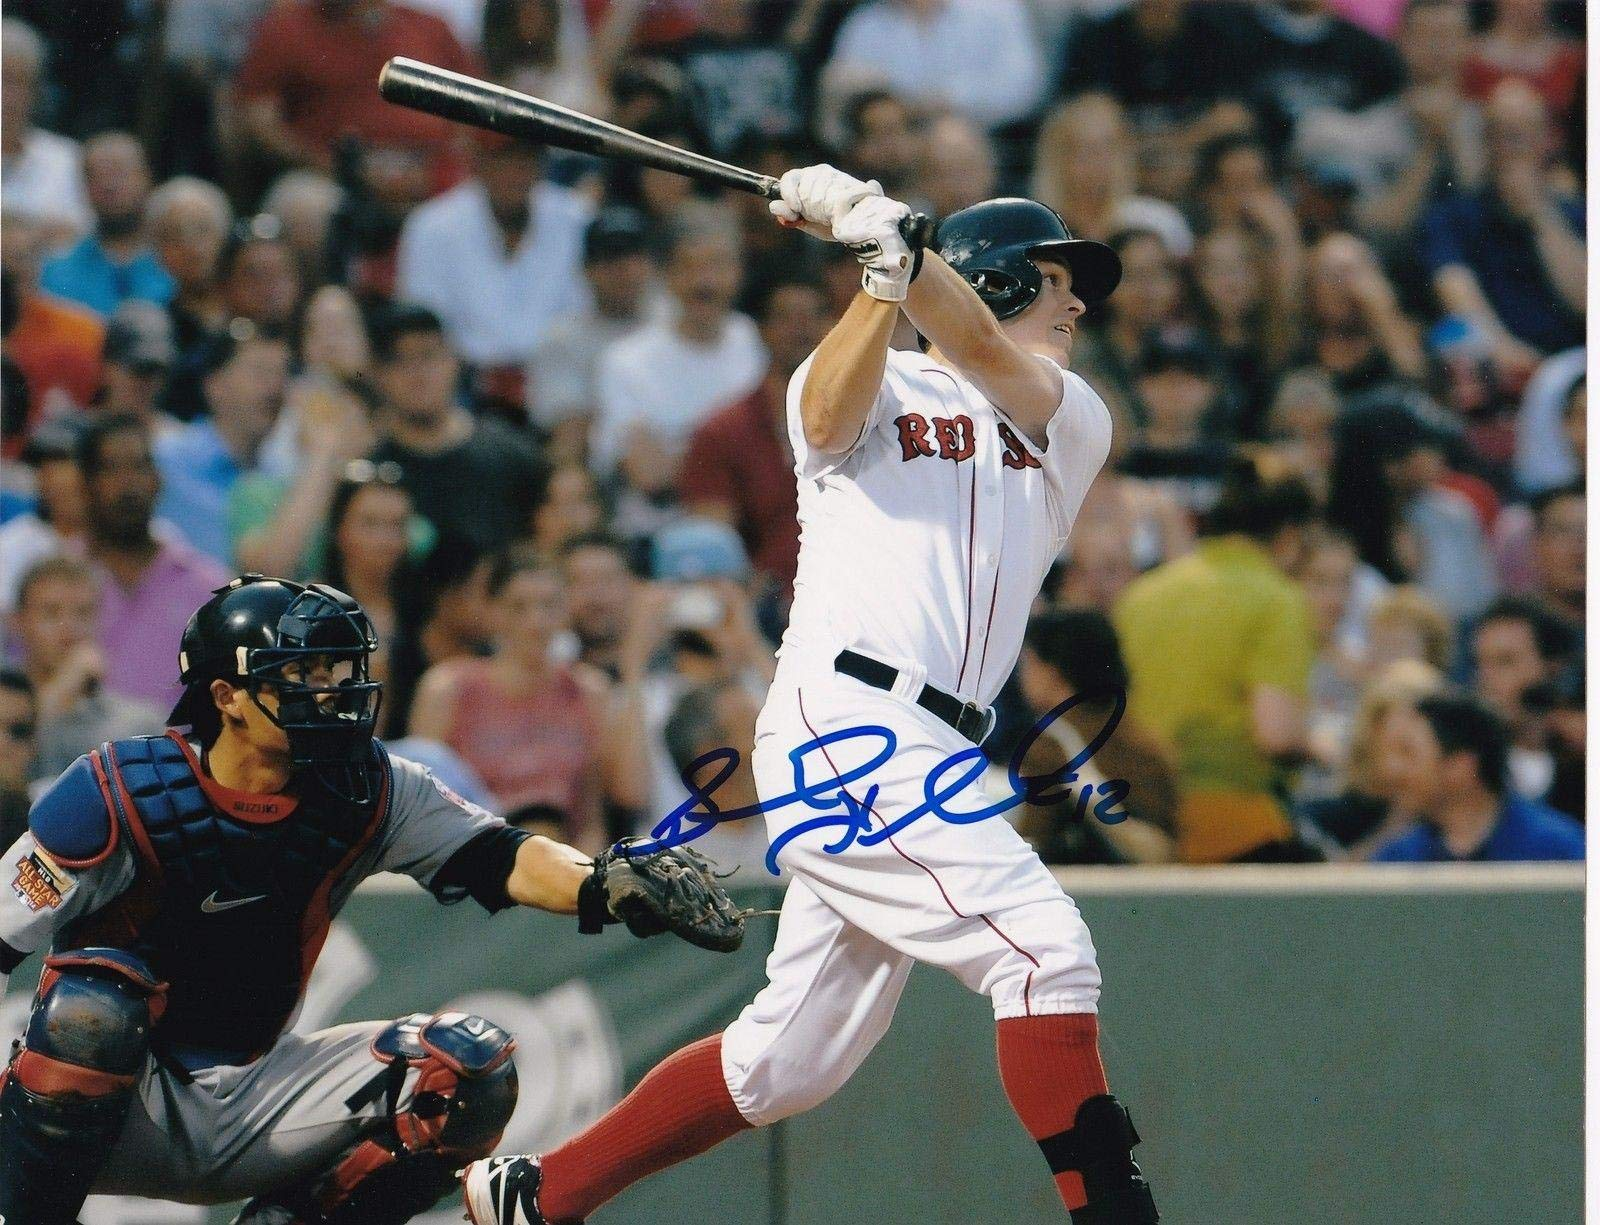 Brock Holt Signed Picture 8x10 Autographed MLB Photos